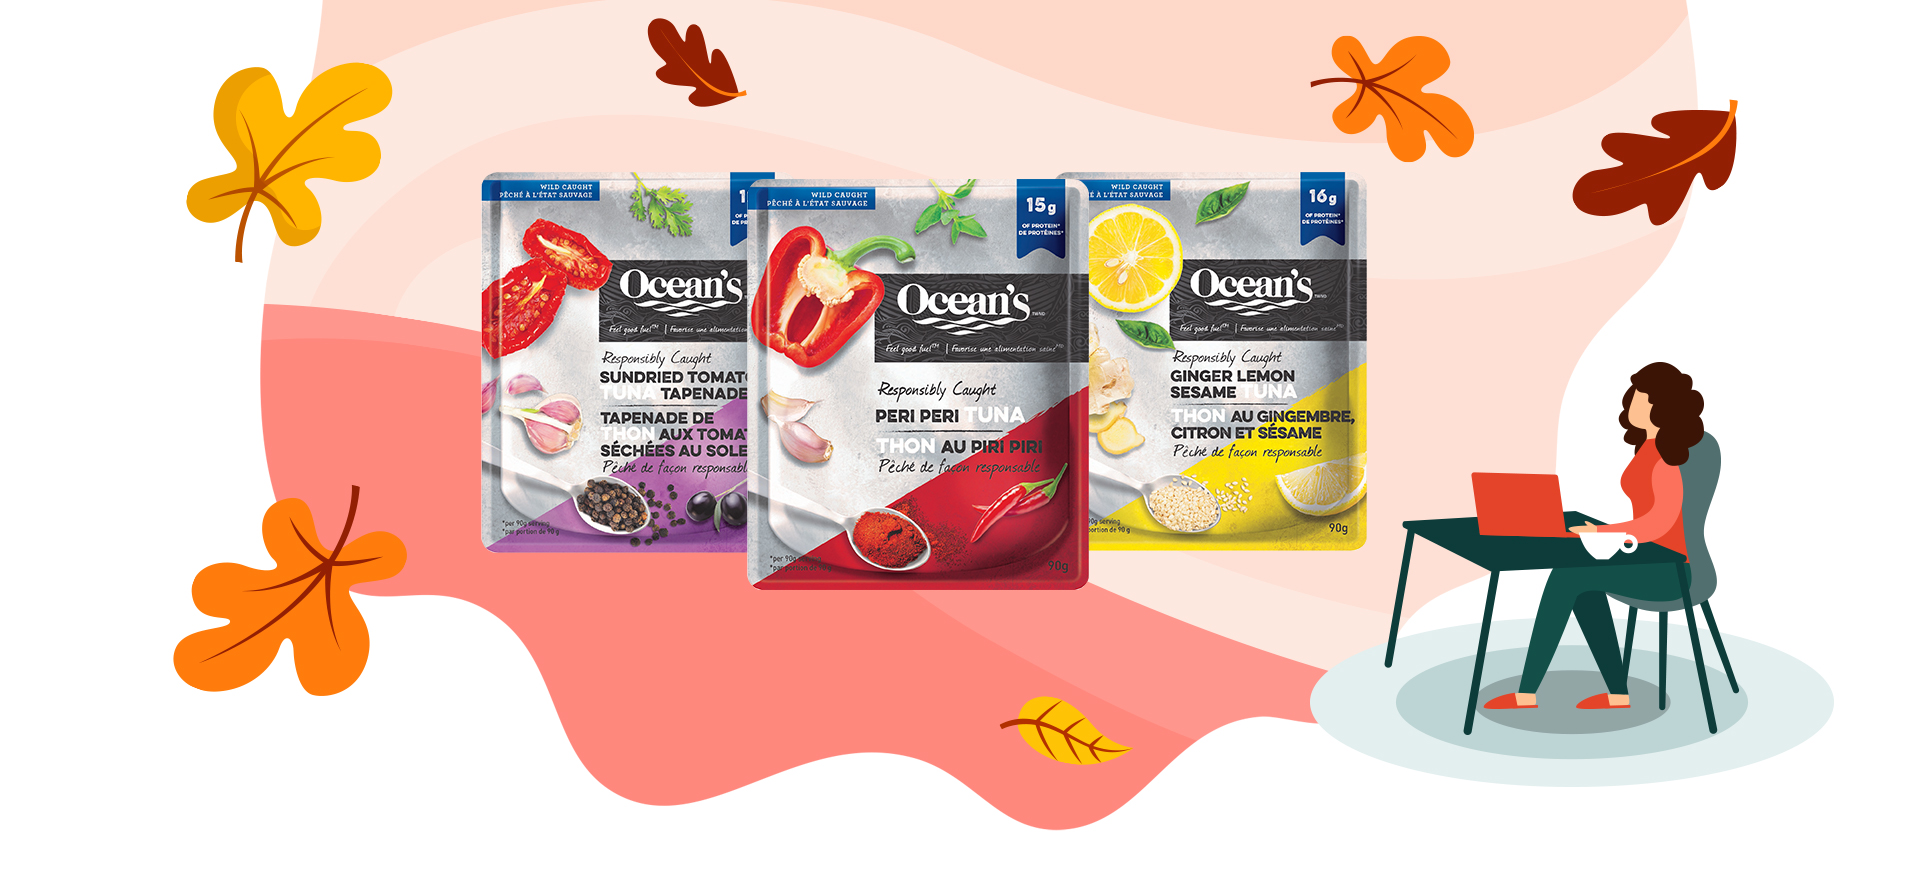 Explore Uncharted Flavours with Ocean's Tuna Pouches